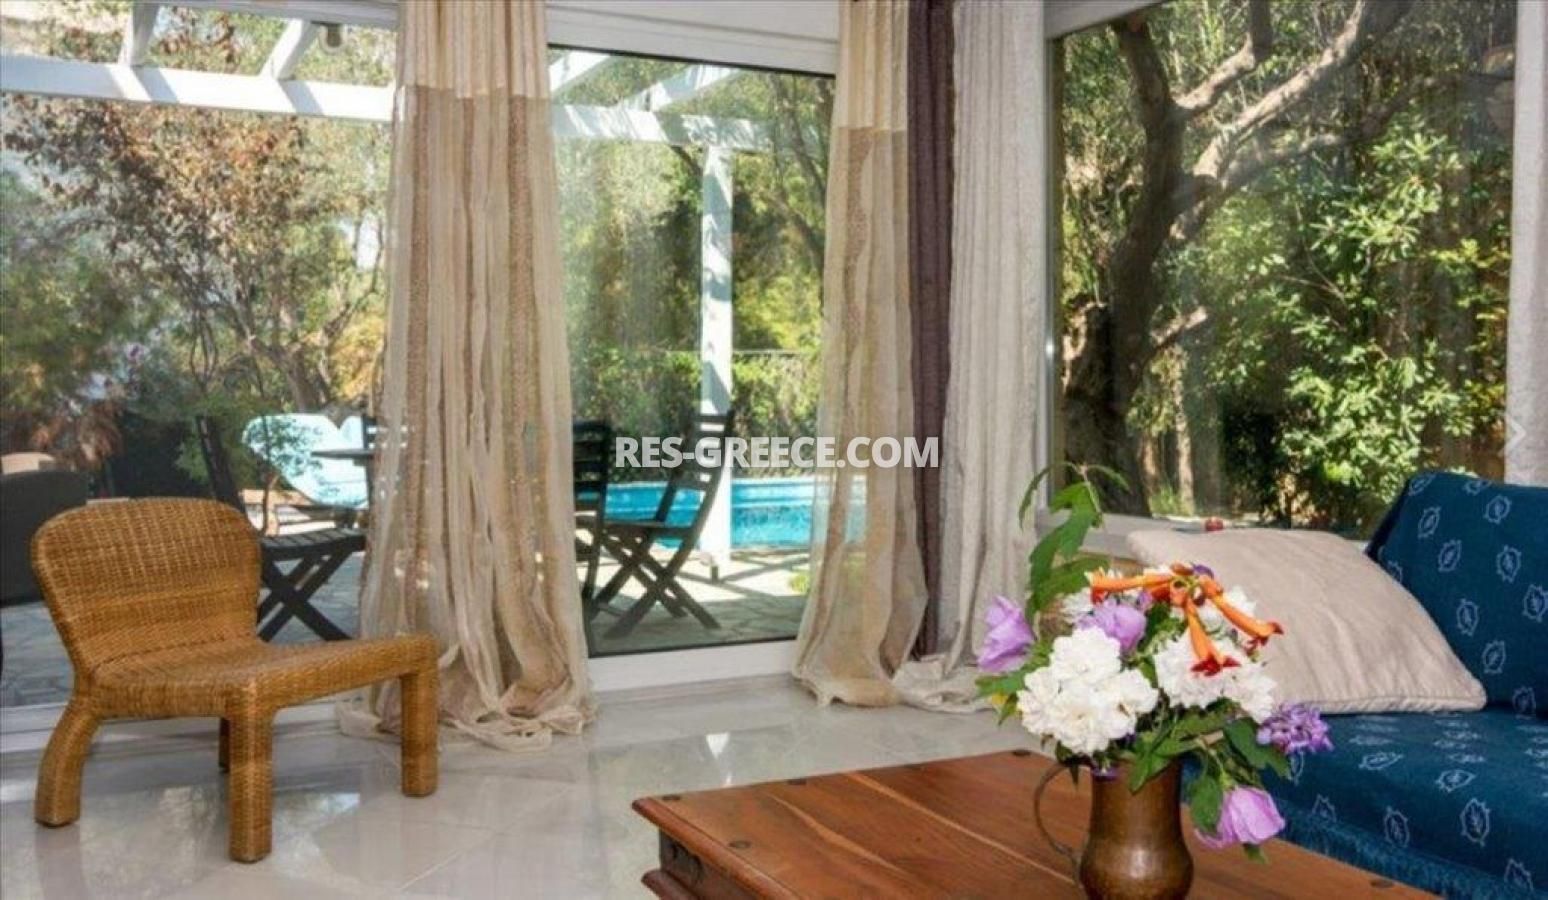 Ilectra, Halkidiki-Sithonia, Greece - cozy cottage with a pool by the sea - Photo 1